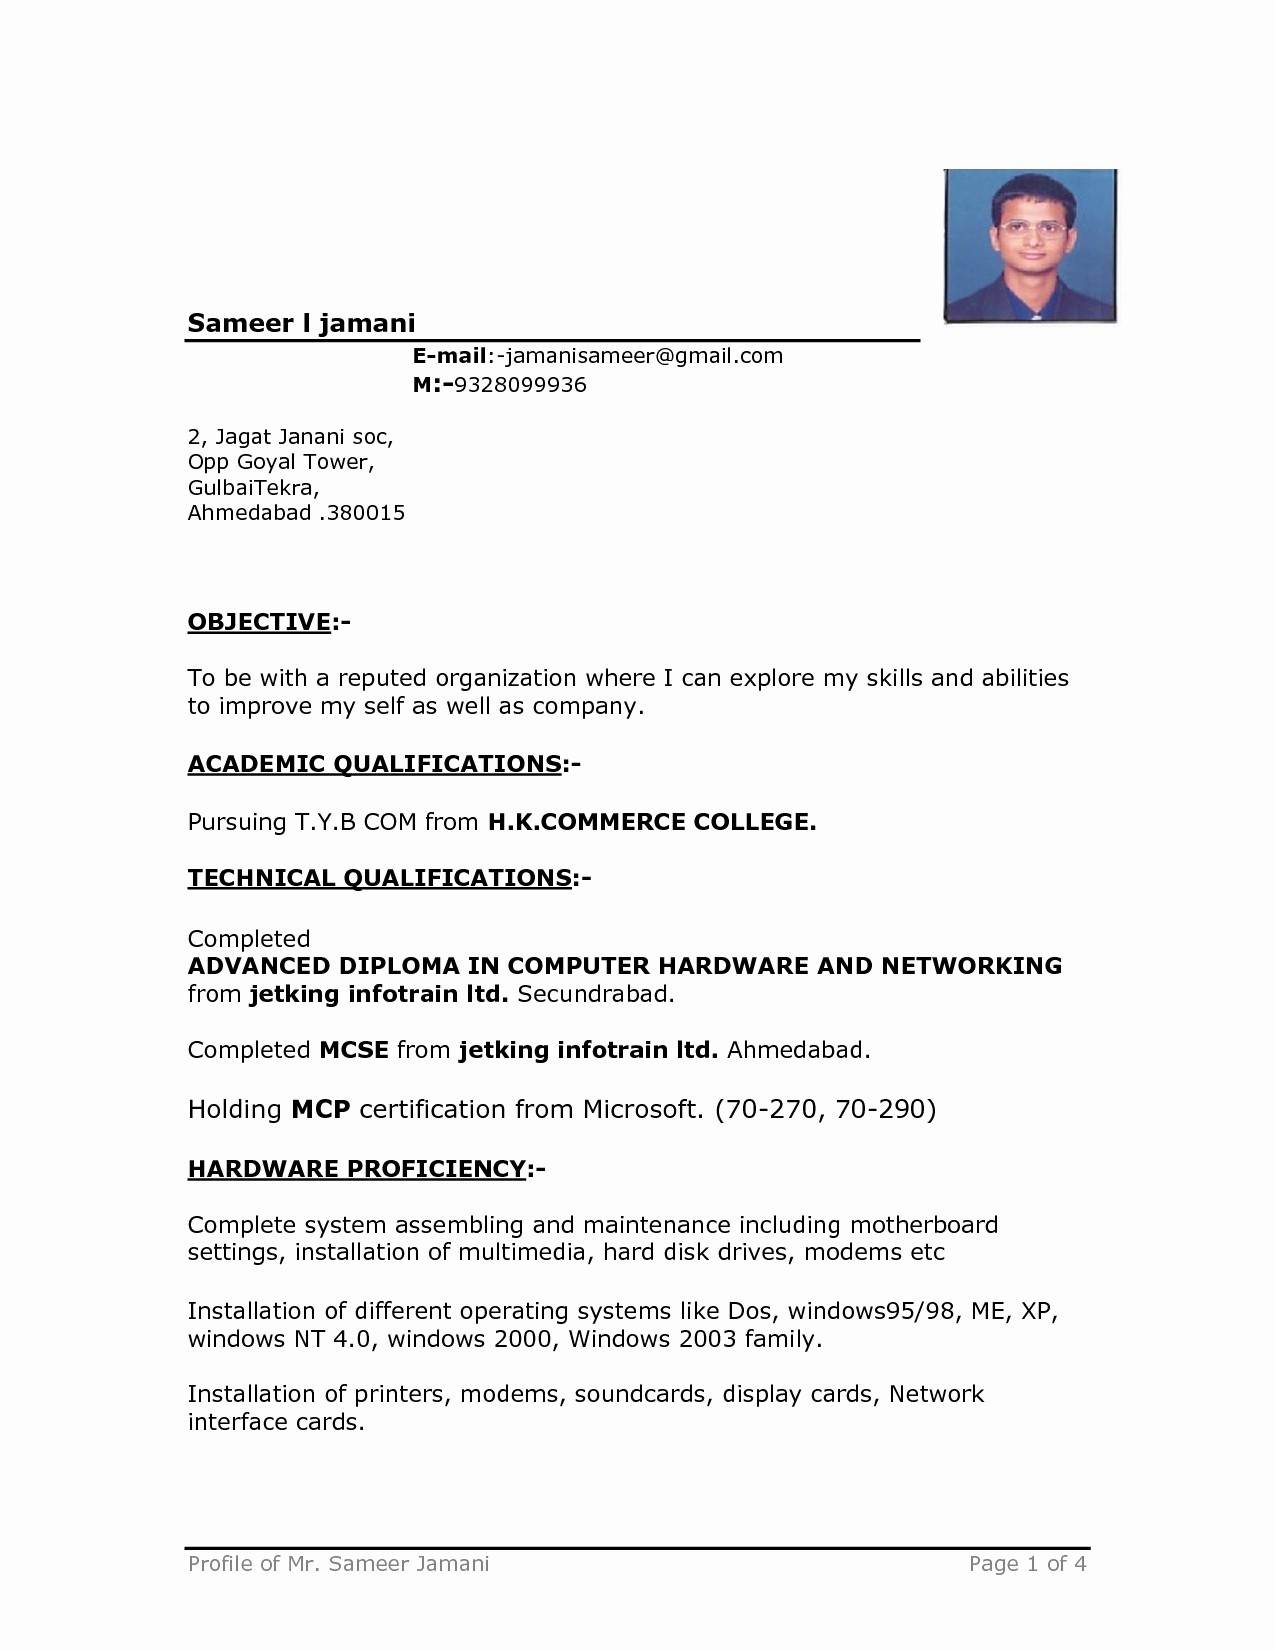 Ms Word Templates for Resume Beautiful Resume Template Microsoft Word 2017